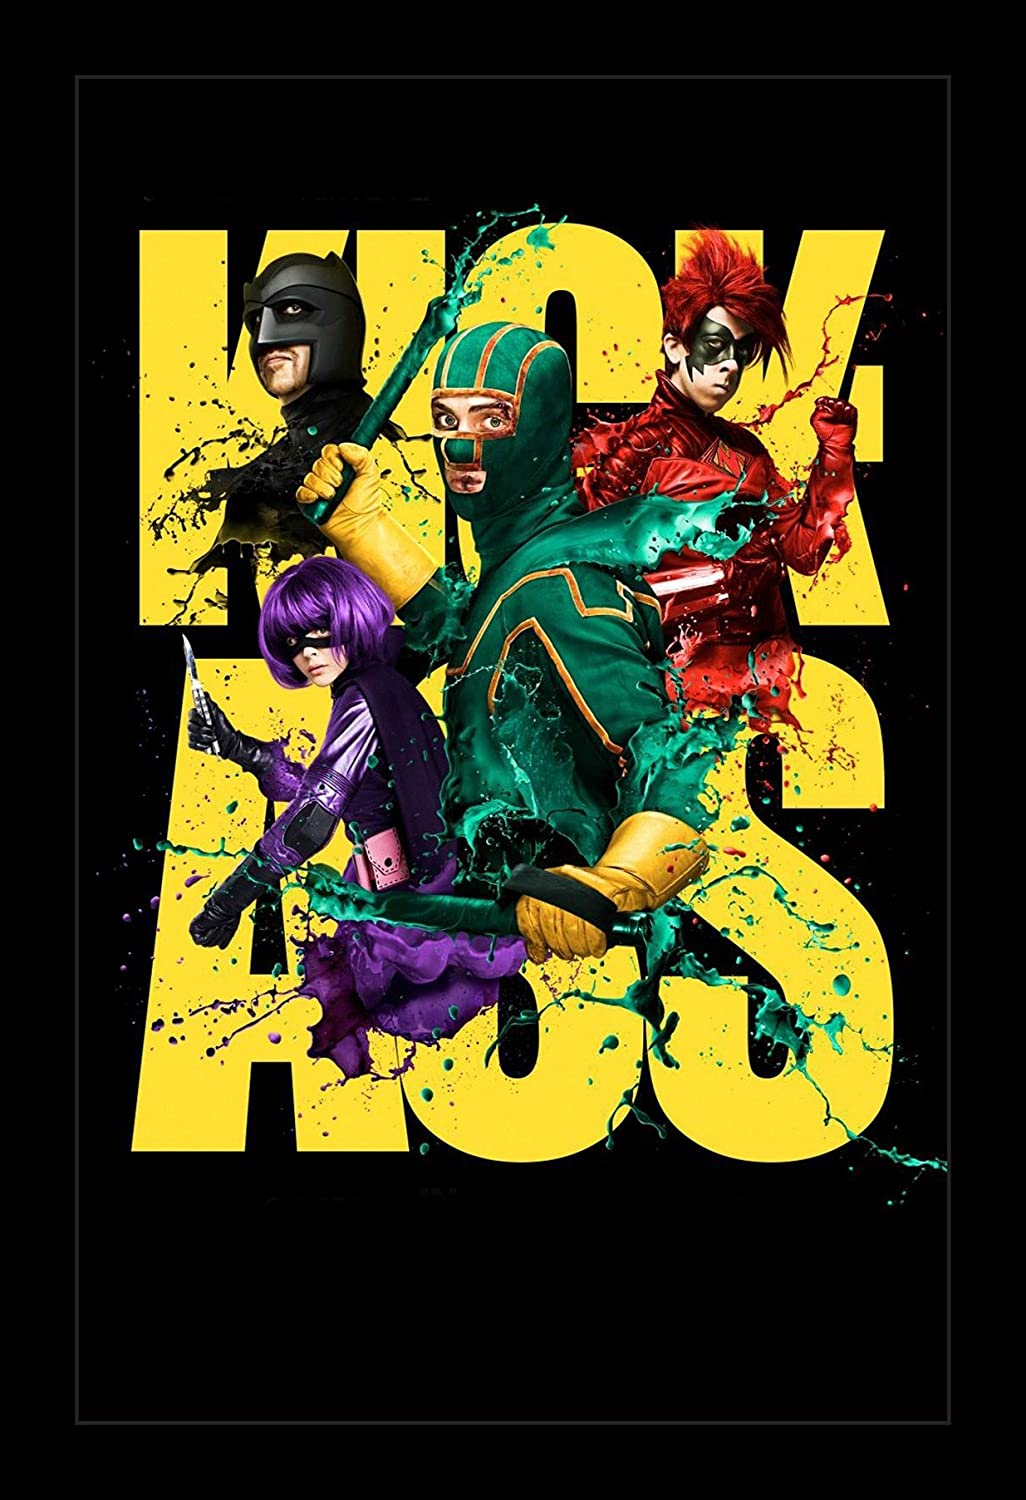 Kick-Ass - 11x17 Framed Movie Poster by Wallspace